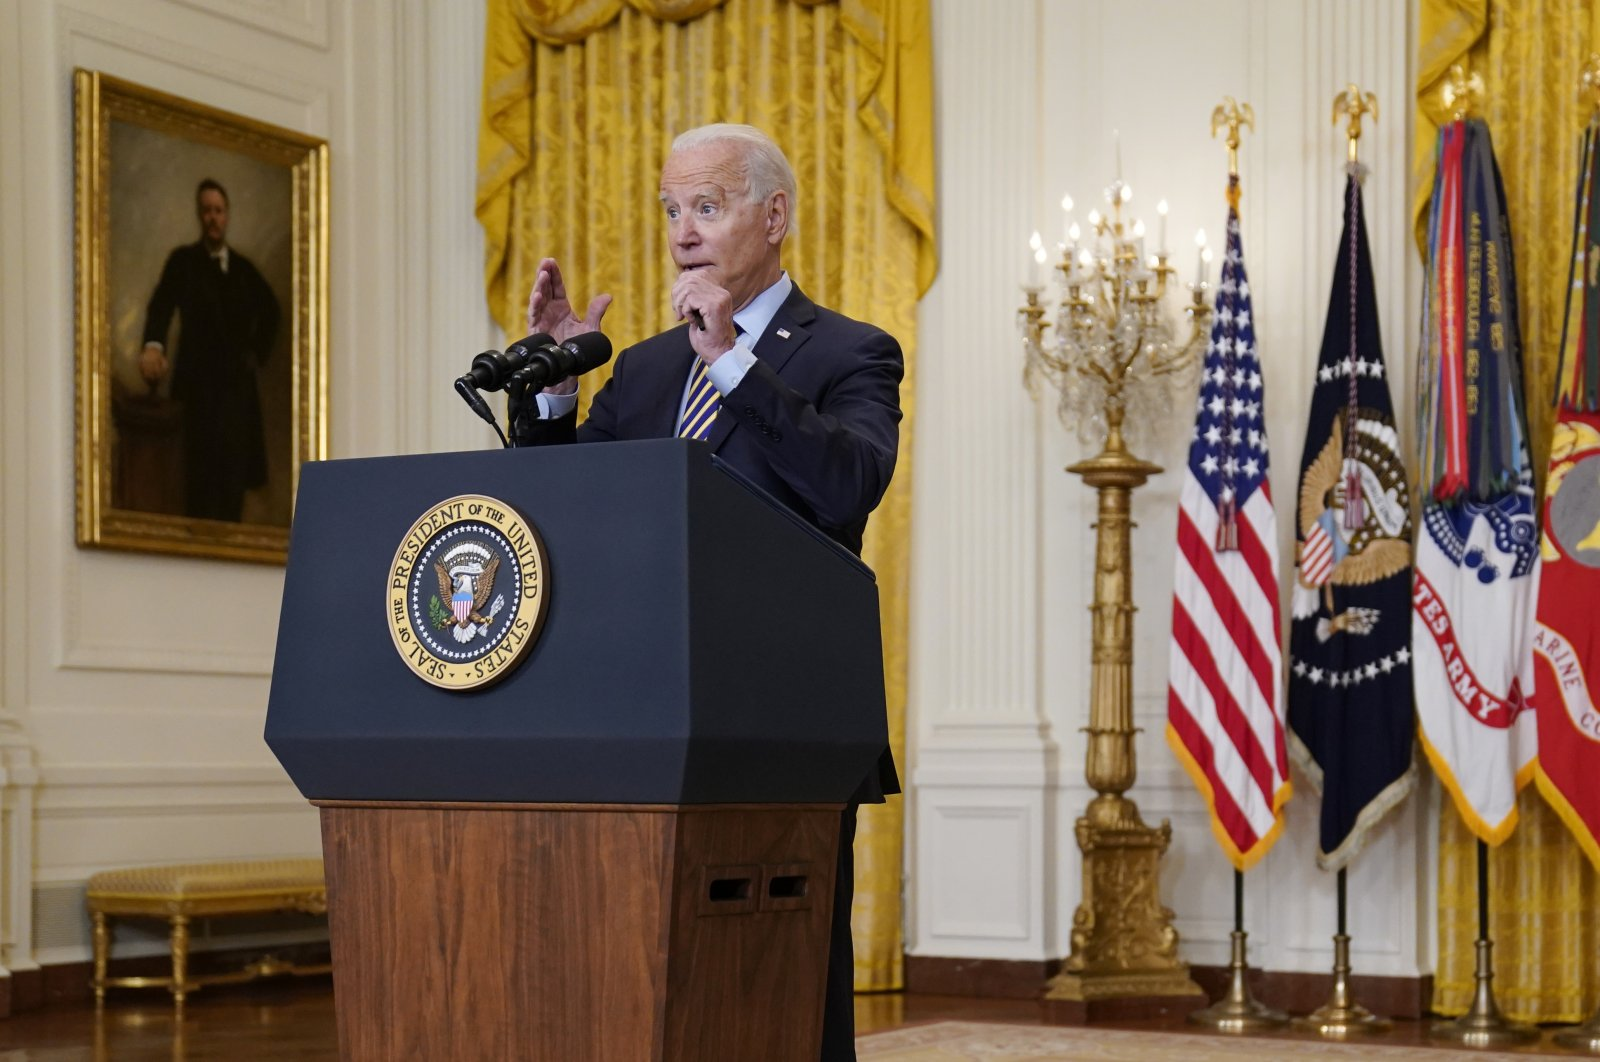 President Joe Biden speaks about the American troop withdrawal from Afghanistan, in the East Room of the White House, Washington, U.S., July 8, 2021. (AP Photo)